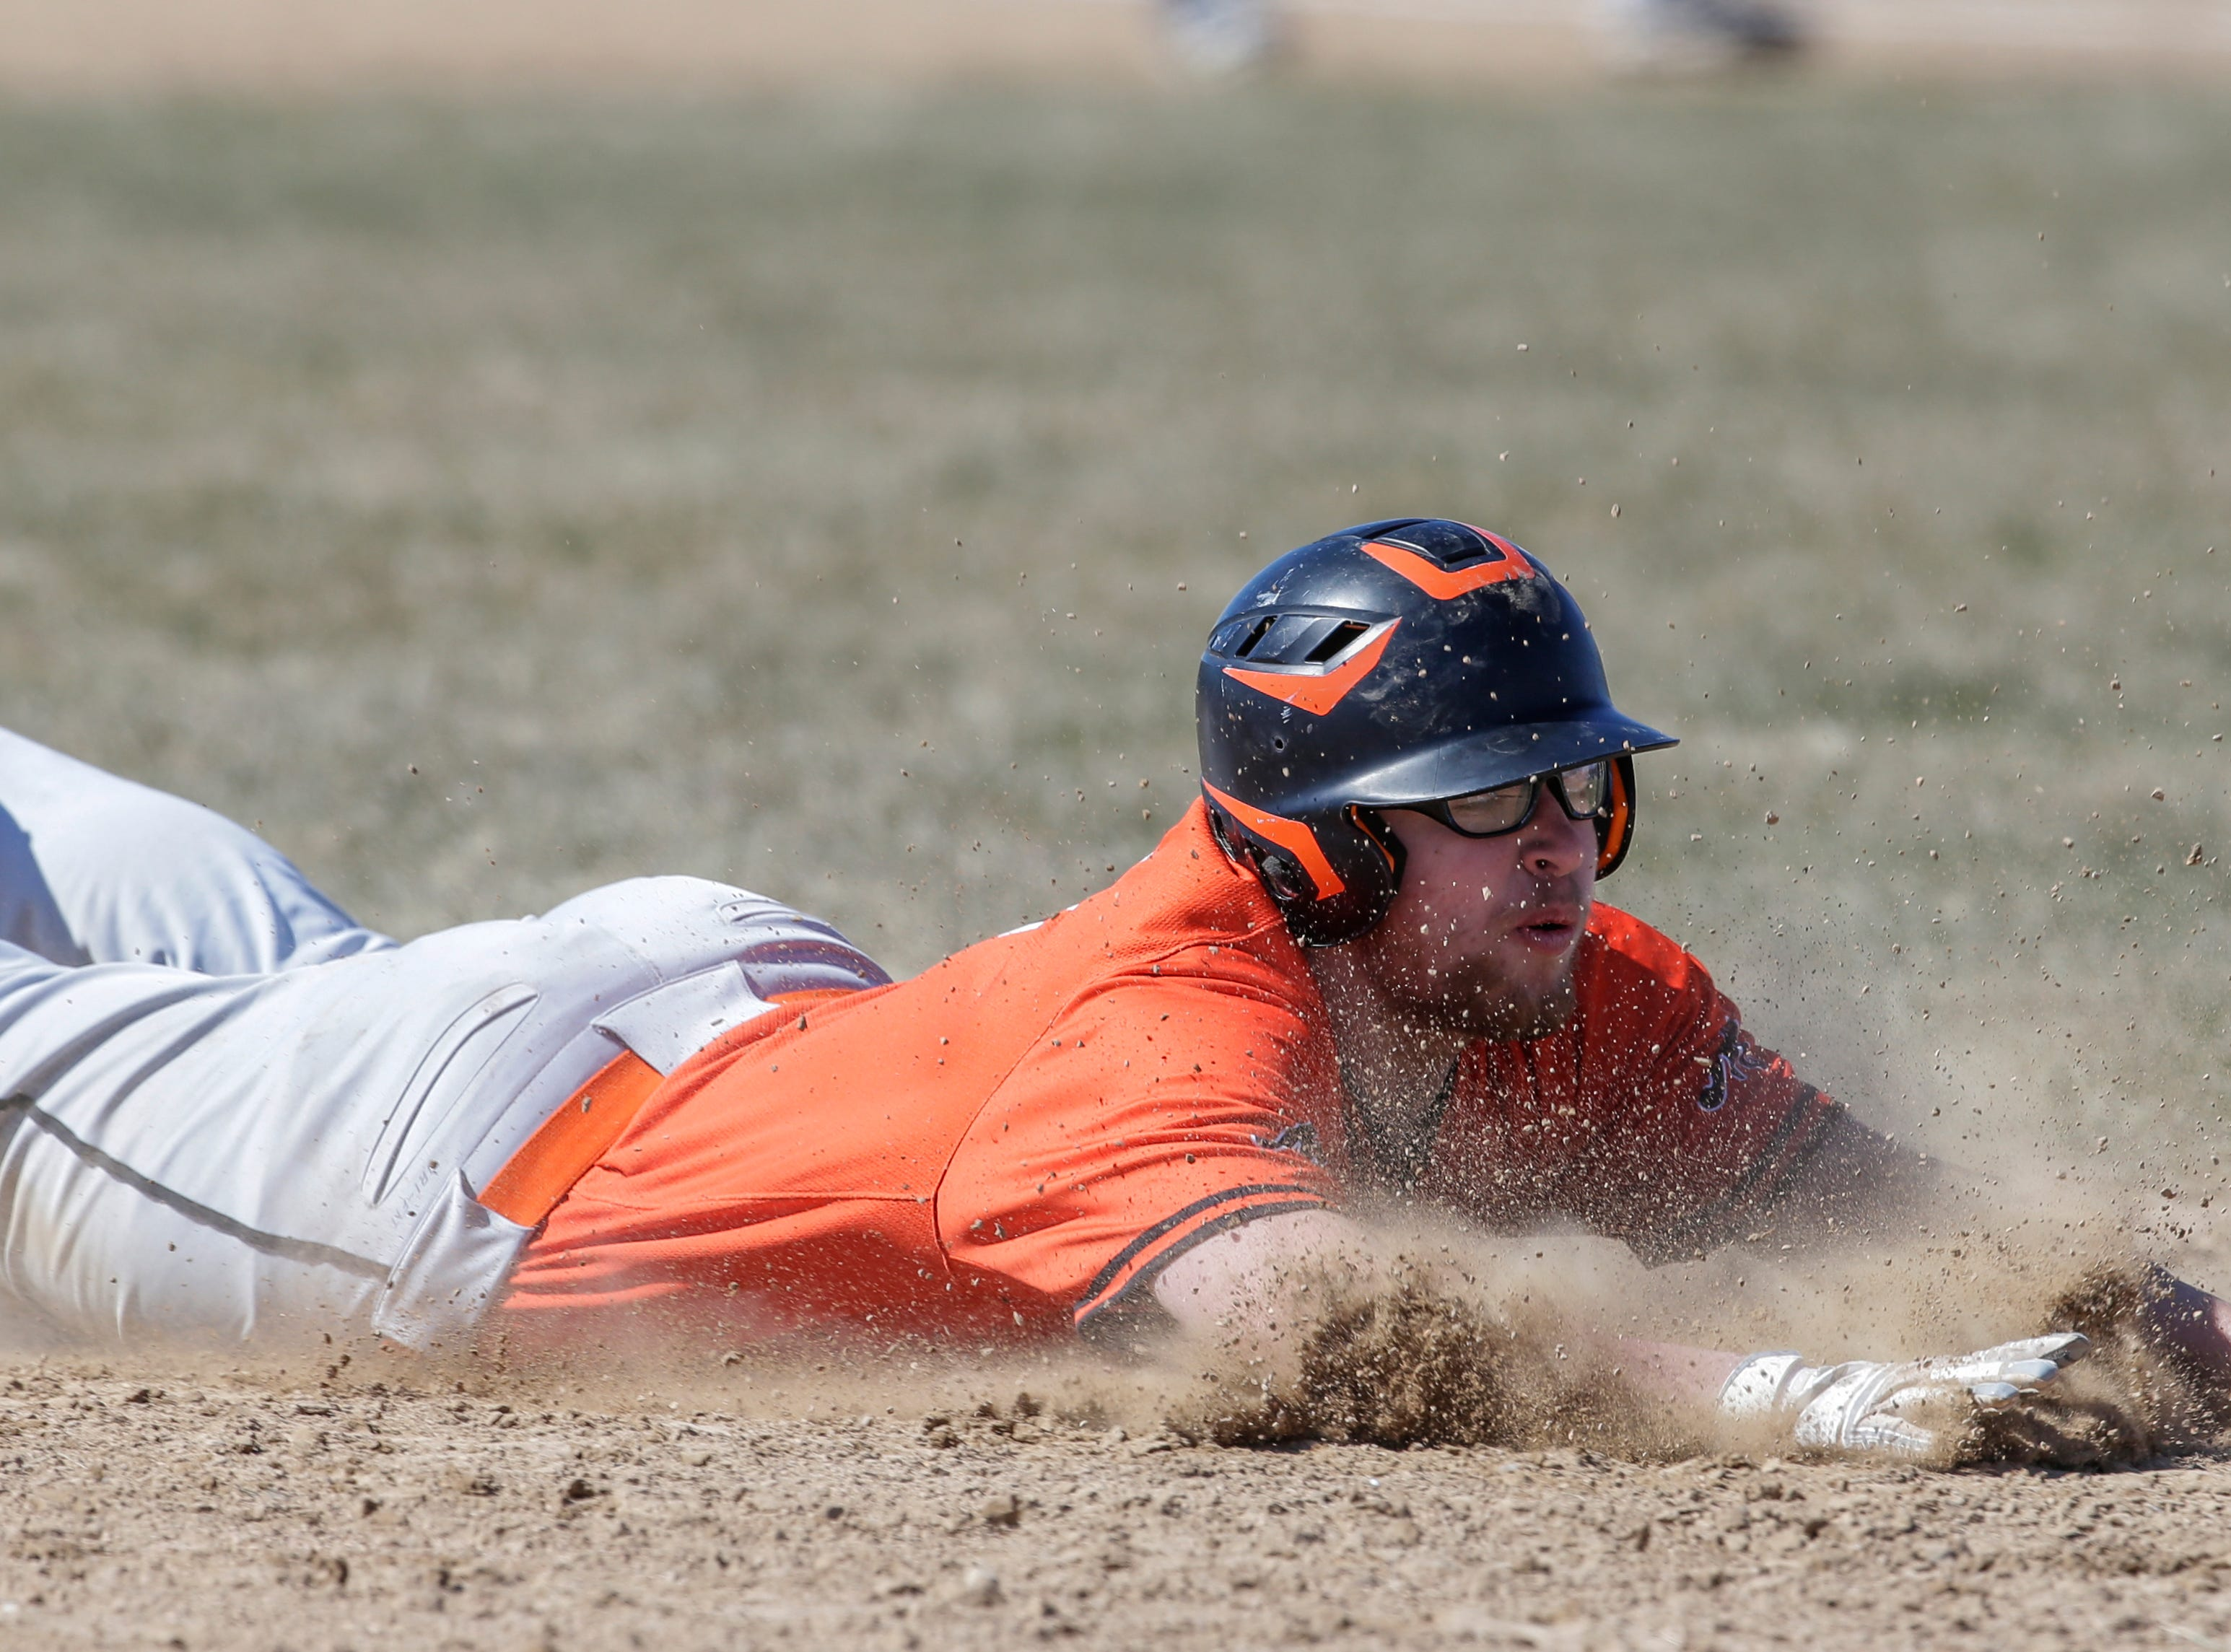 Mishicot's Austin Lambrecht (6) slides into third base against Roncalli at Roncalli High School Saturday, Apr. 28, 2018, in Manitowoc, Wis. Josh Clark/USA TODAY NETWORK-Wisconsin